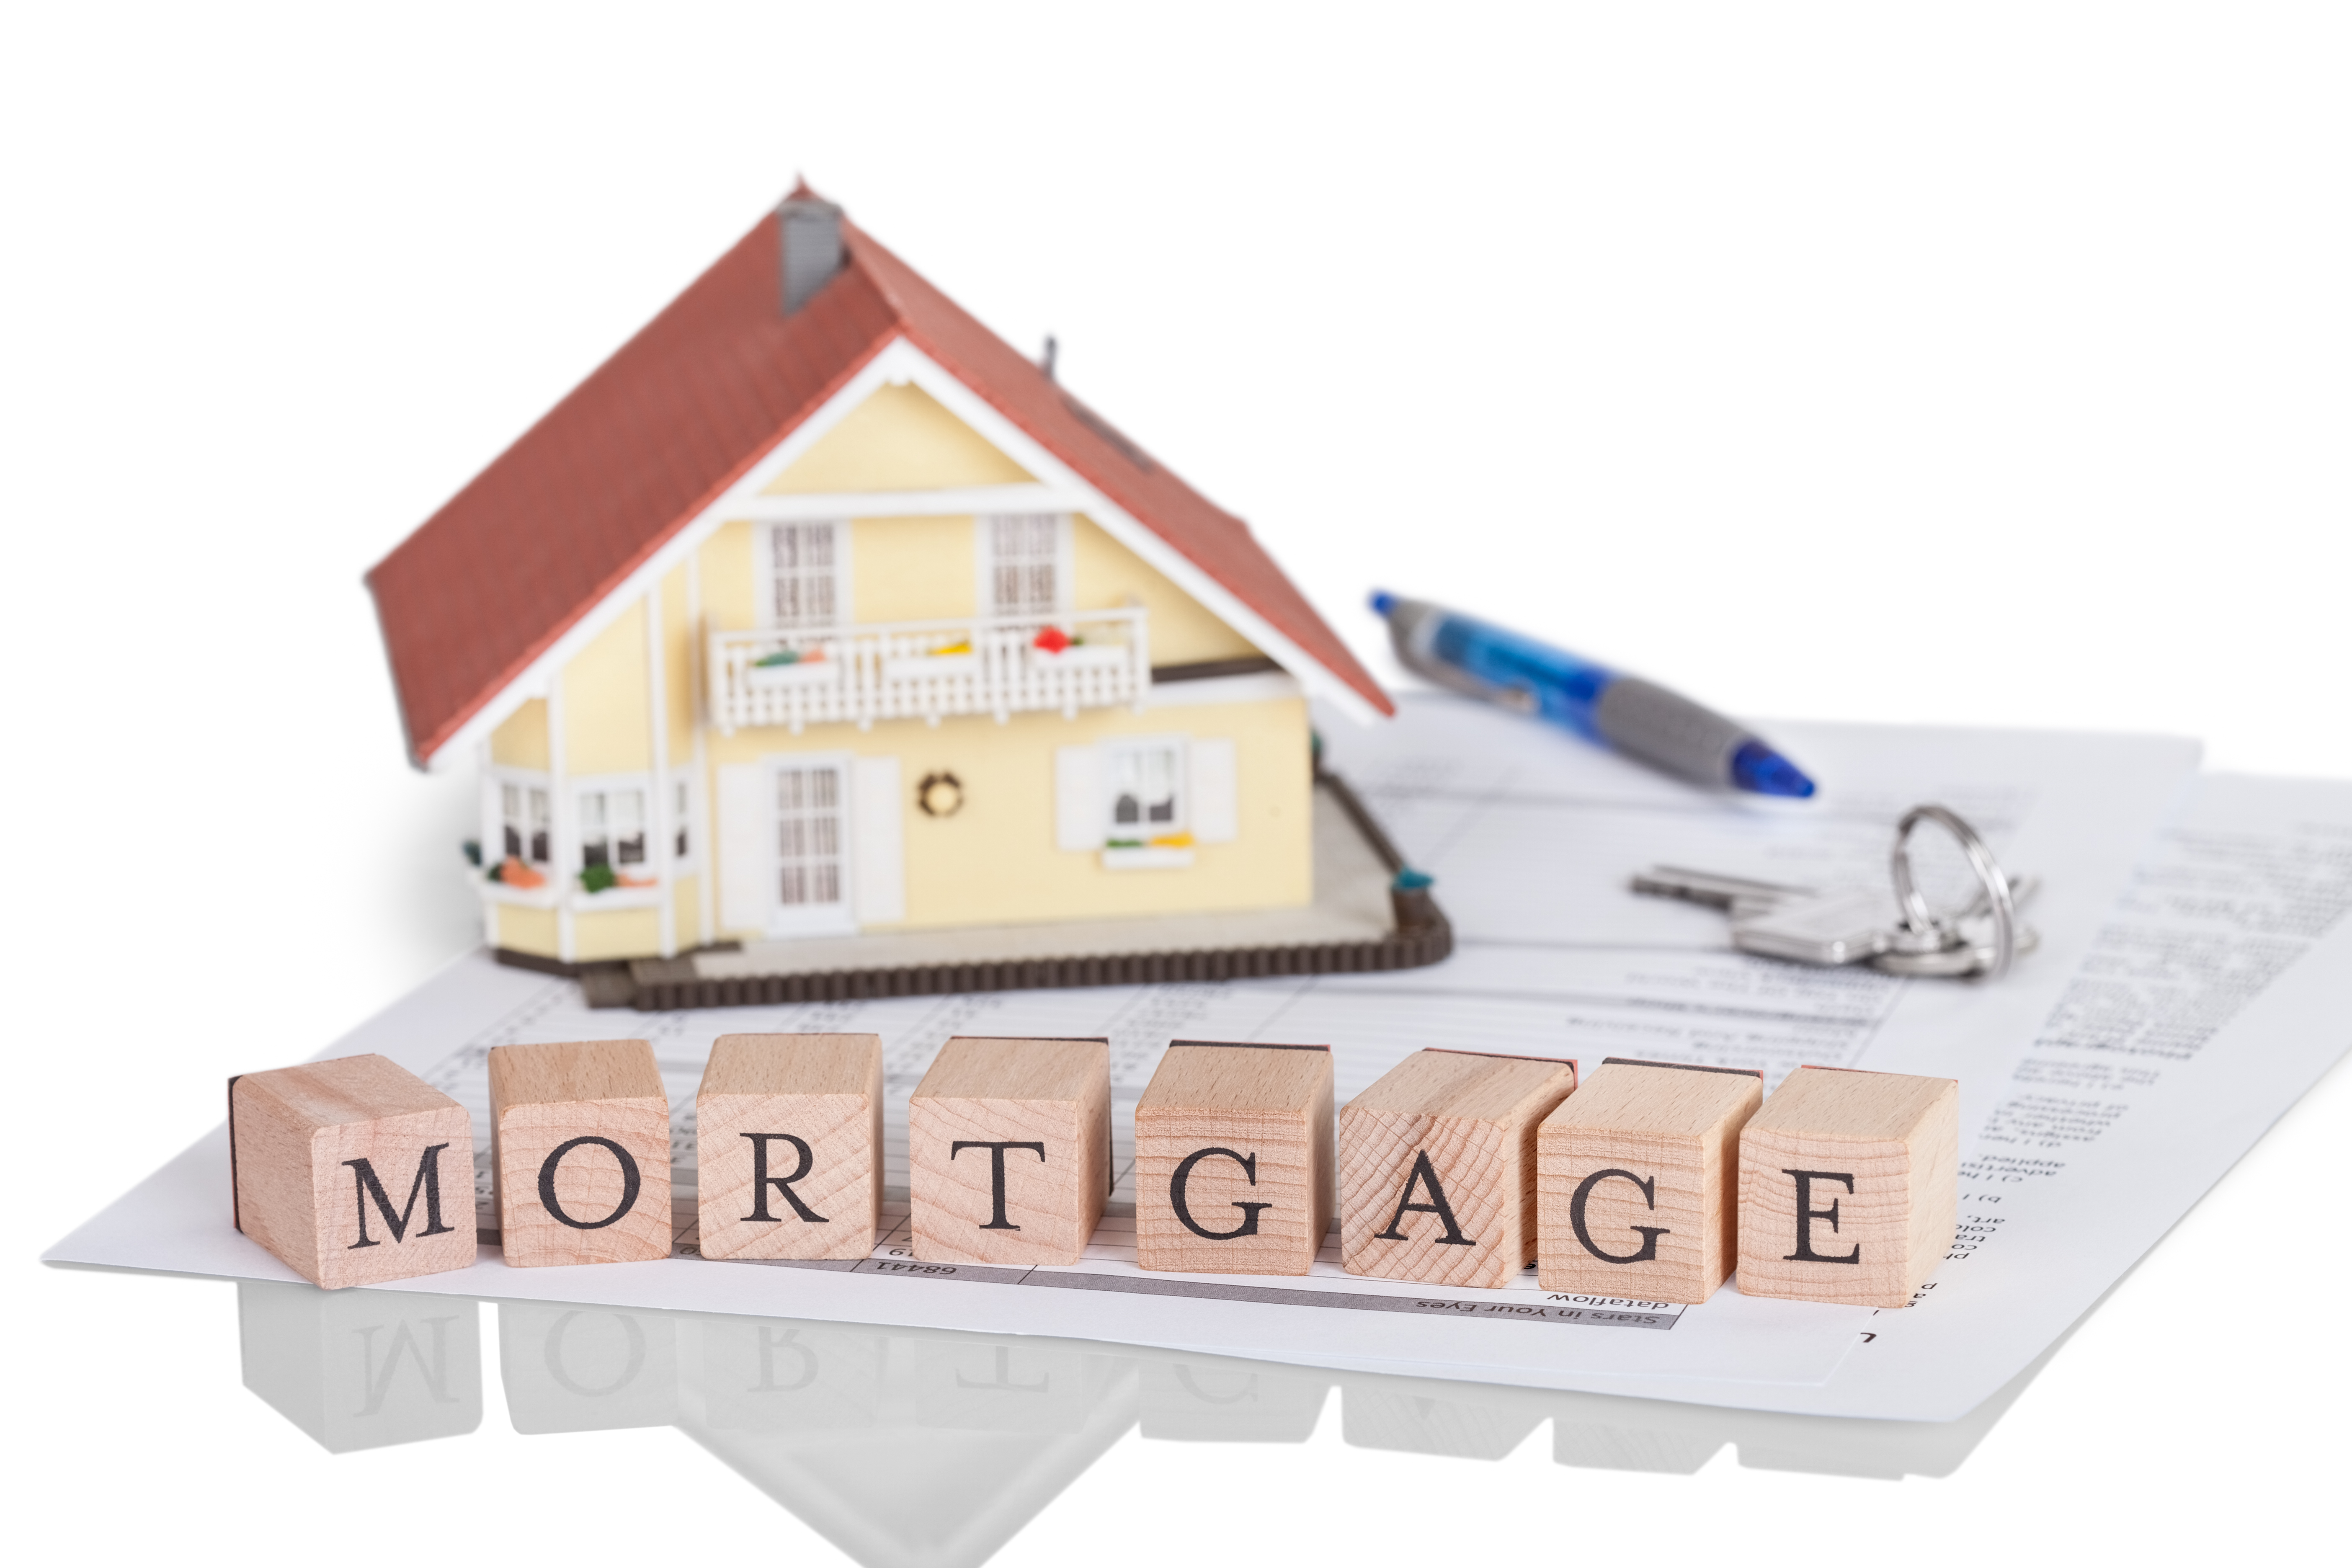 Building societies for Building a house loan options